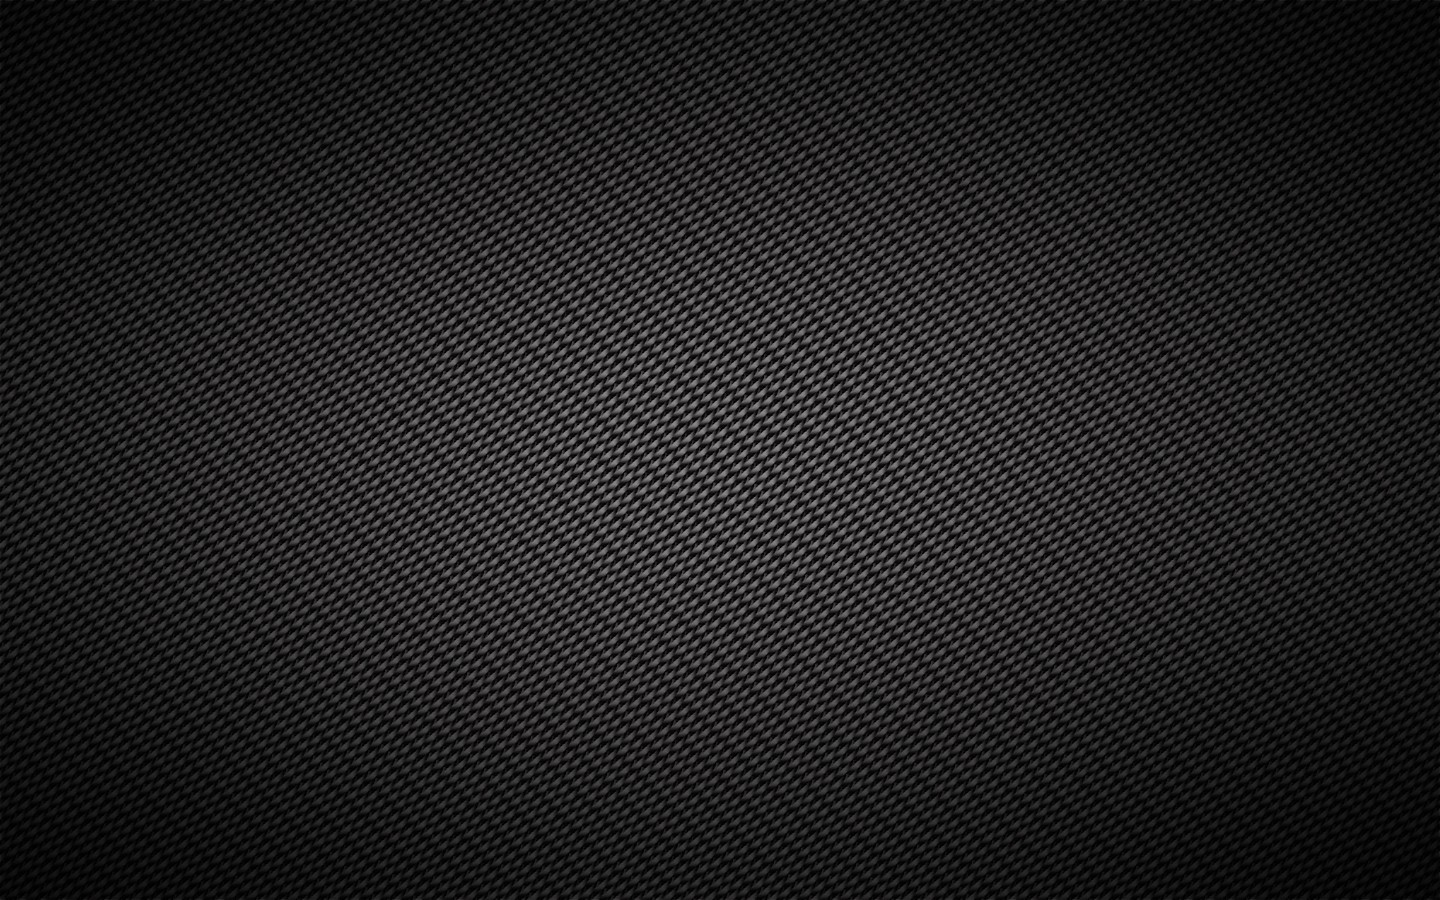 patterns Textures backgrounds gradient HD Wallpaper